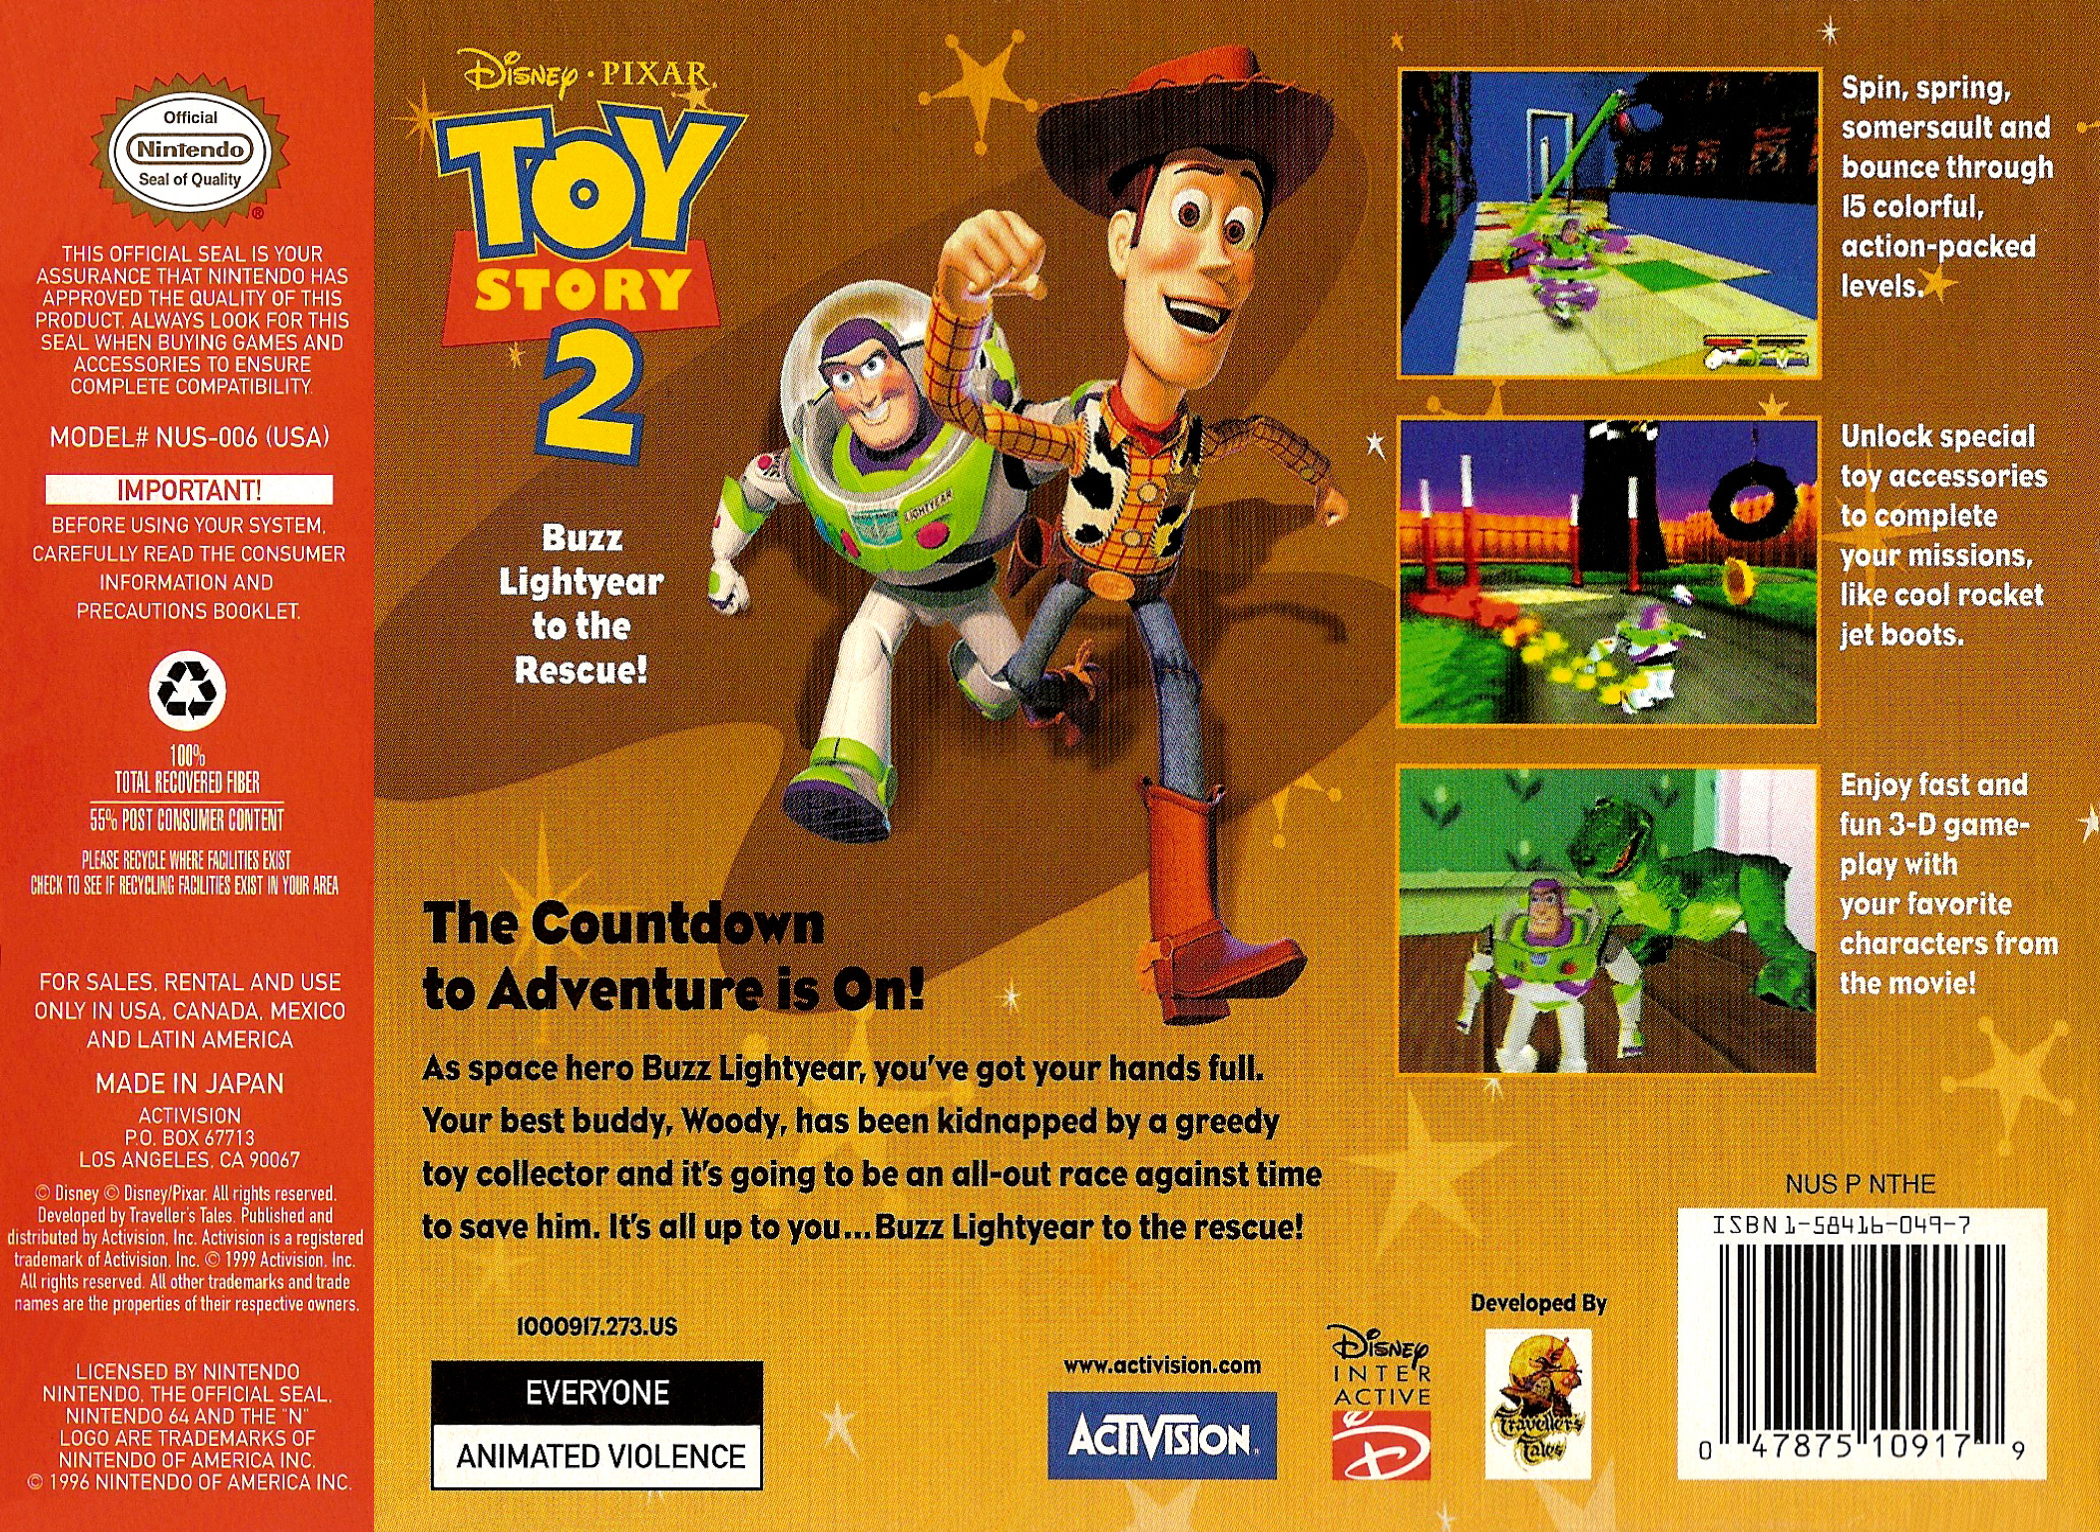 Toy Story Games Woody To The Rescue : Toy story buzz lightyear to the rescue details